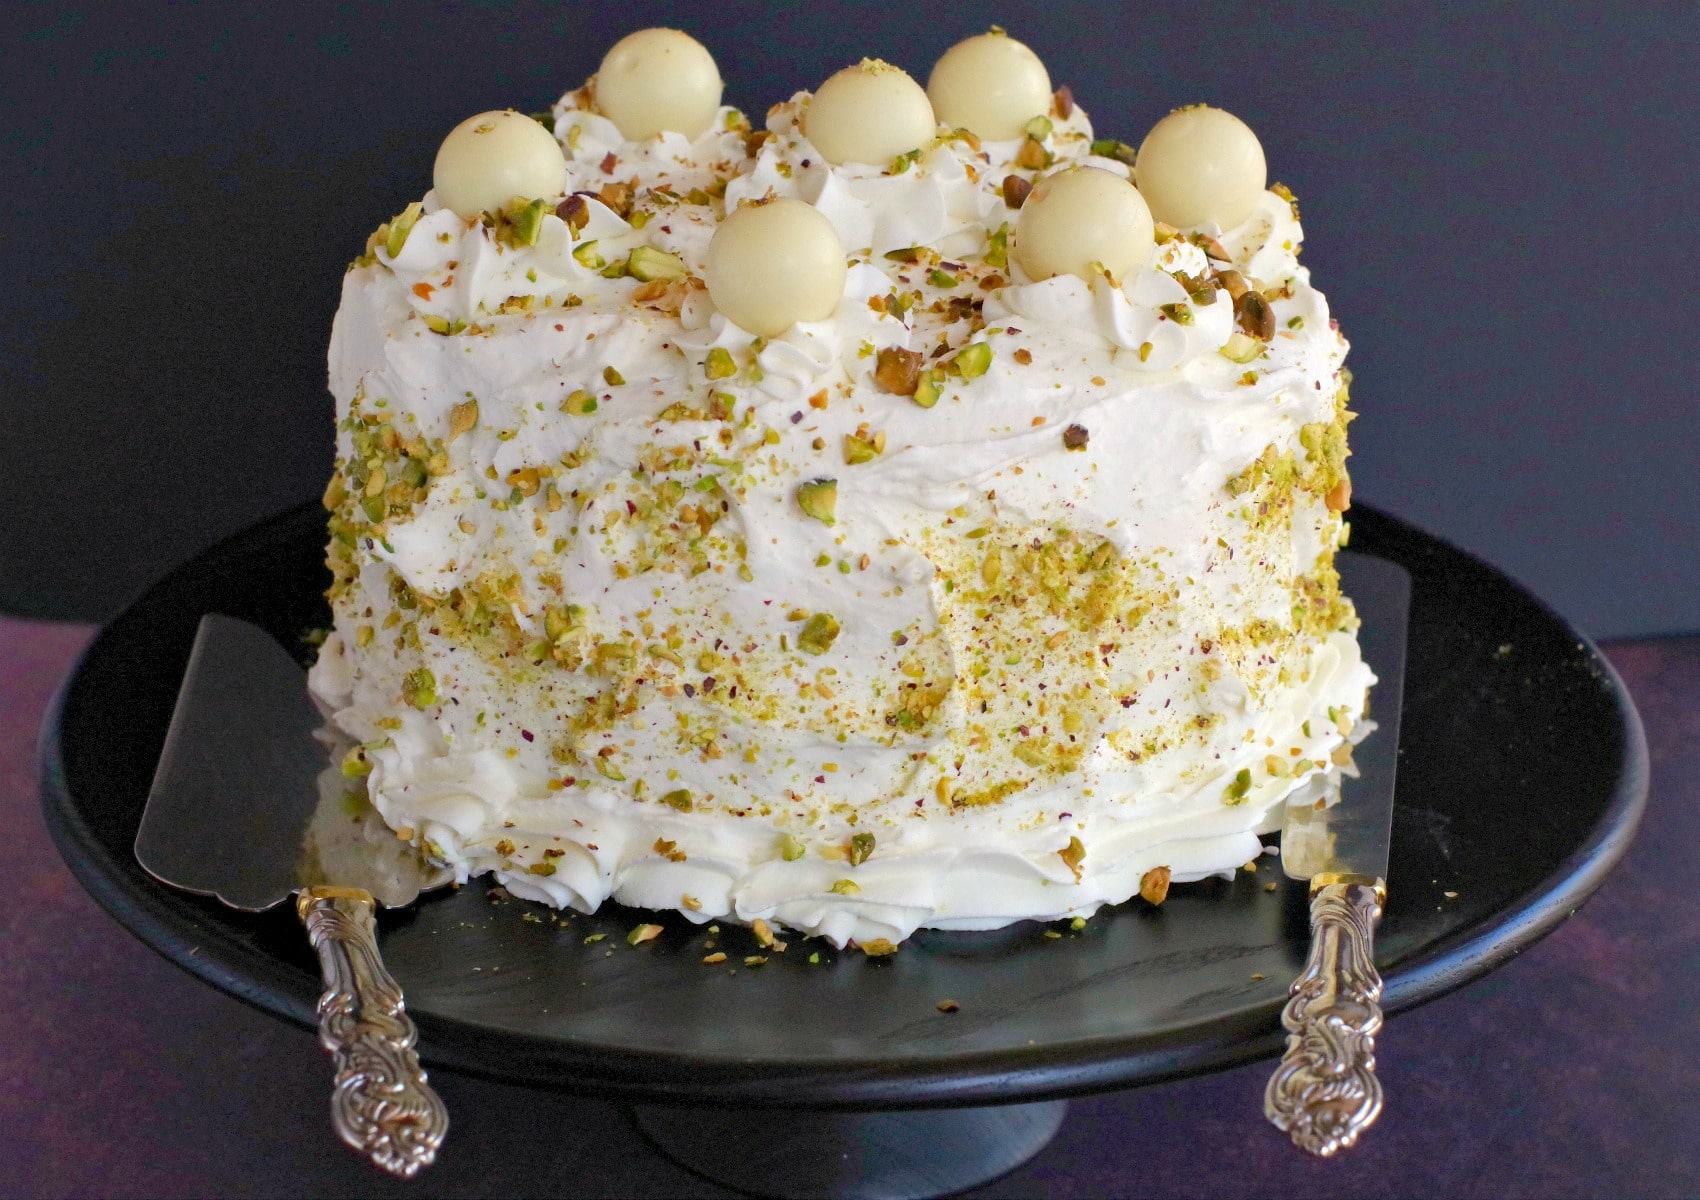 Pistachio Cake on black stand with cake lifter and knife resting on each side